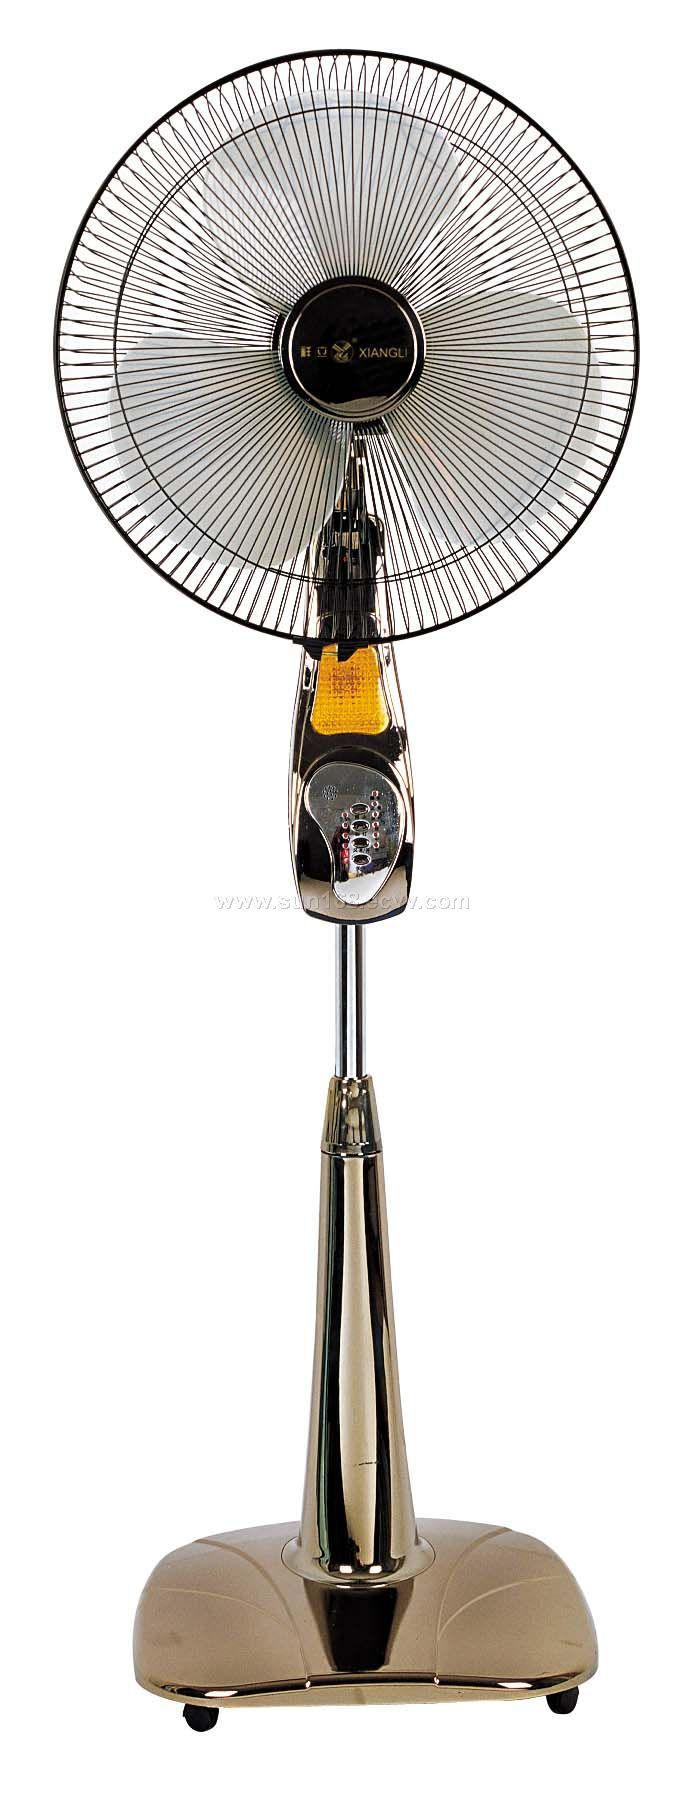 Stand Up Fan : Stand up fan air conditioner